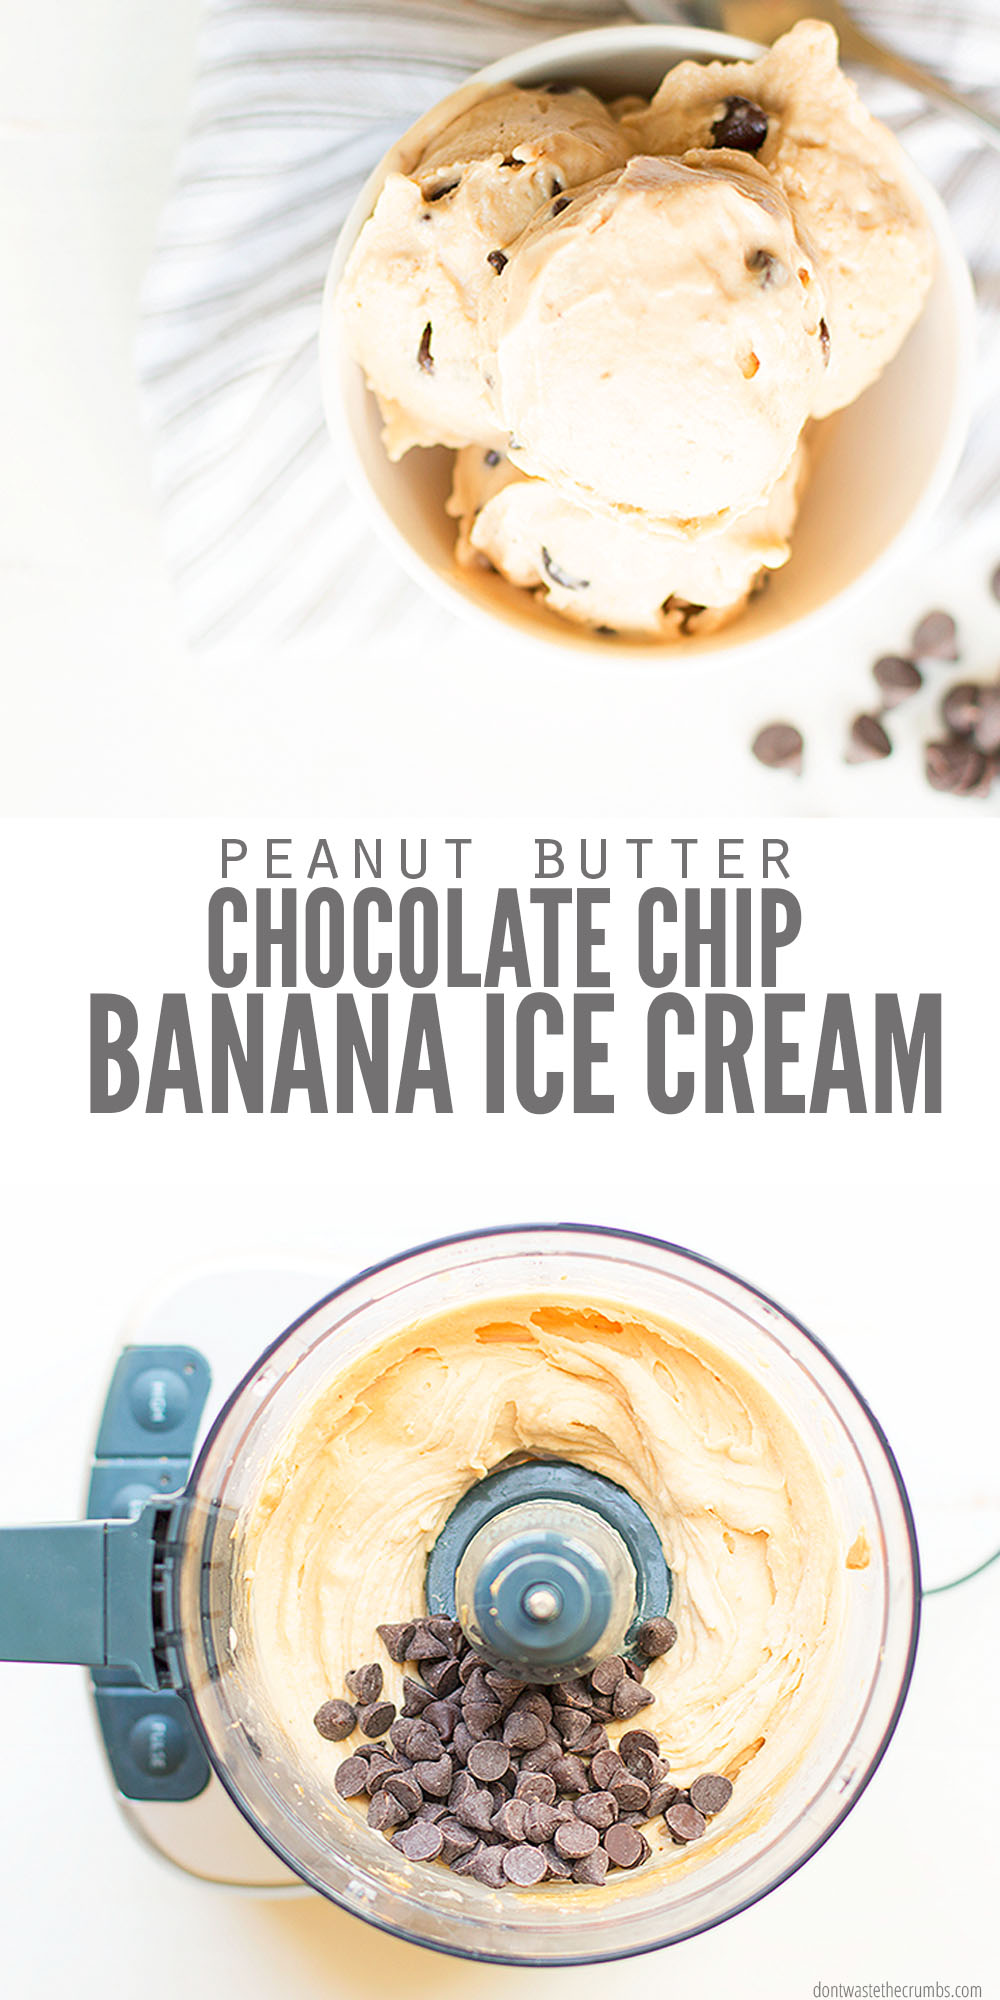 Healthy Peanut Butter Chocolate Chip Banana Ice Cream Recipe